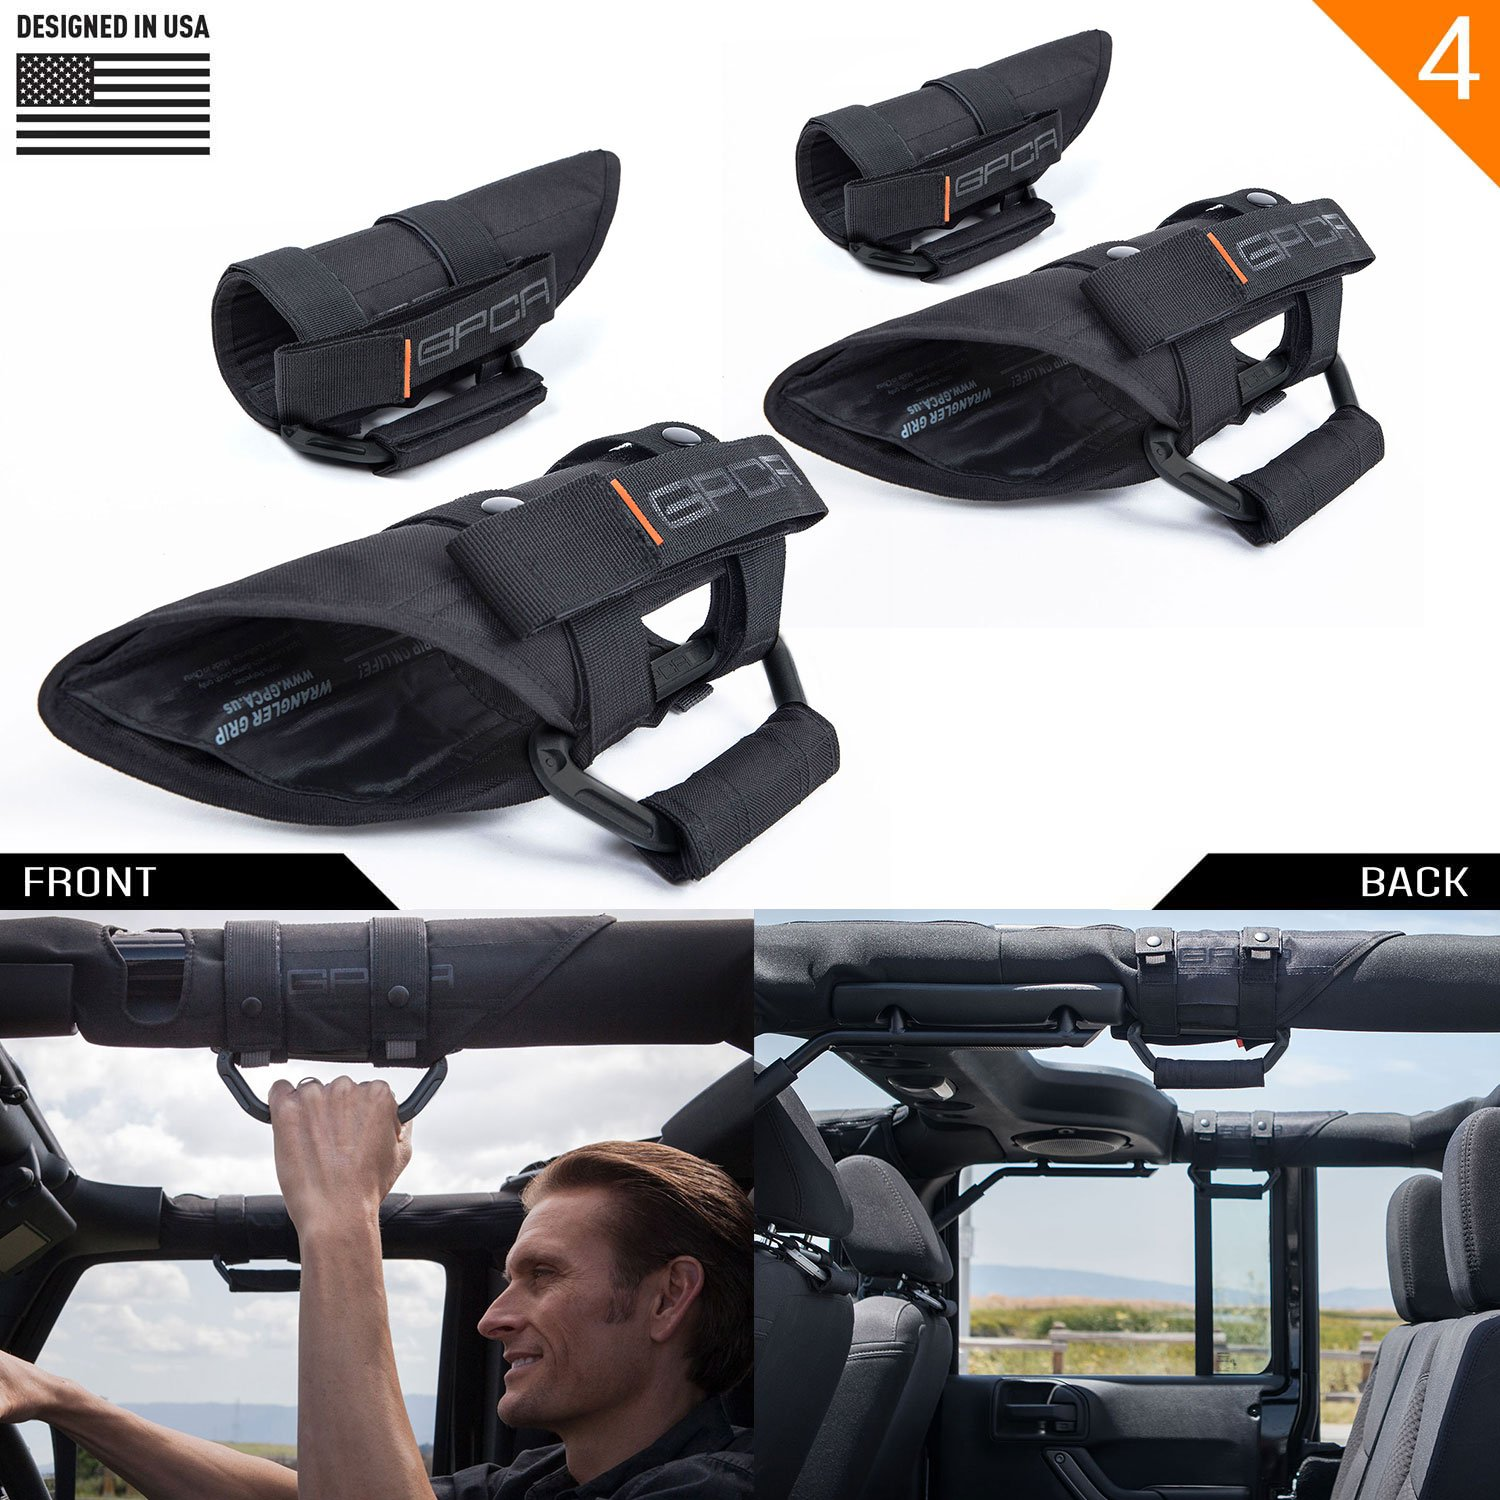 GPCA GP-Grip PRO Grab Handle for Jeep Wrangler JL JK Sport Sahara Freedom Rubicon Unlimited 2DR/ 4DR 2007-2019 w/ 3'' Padded roll bar. Universal to Front/Back (4 Pack Jet Black)